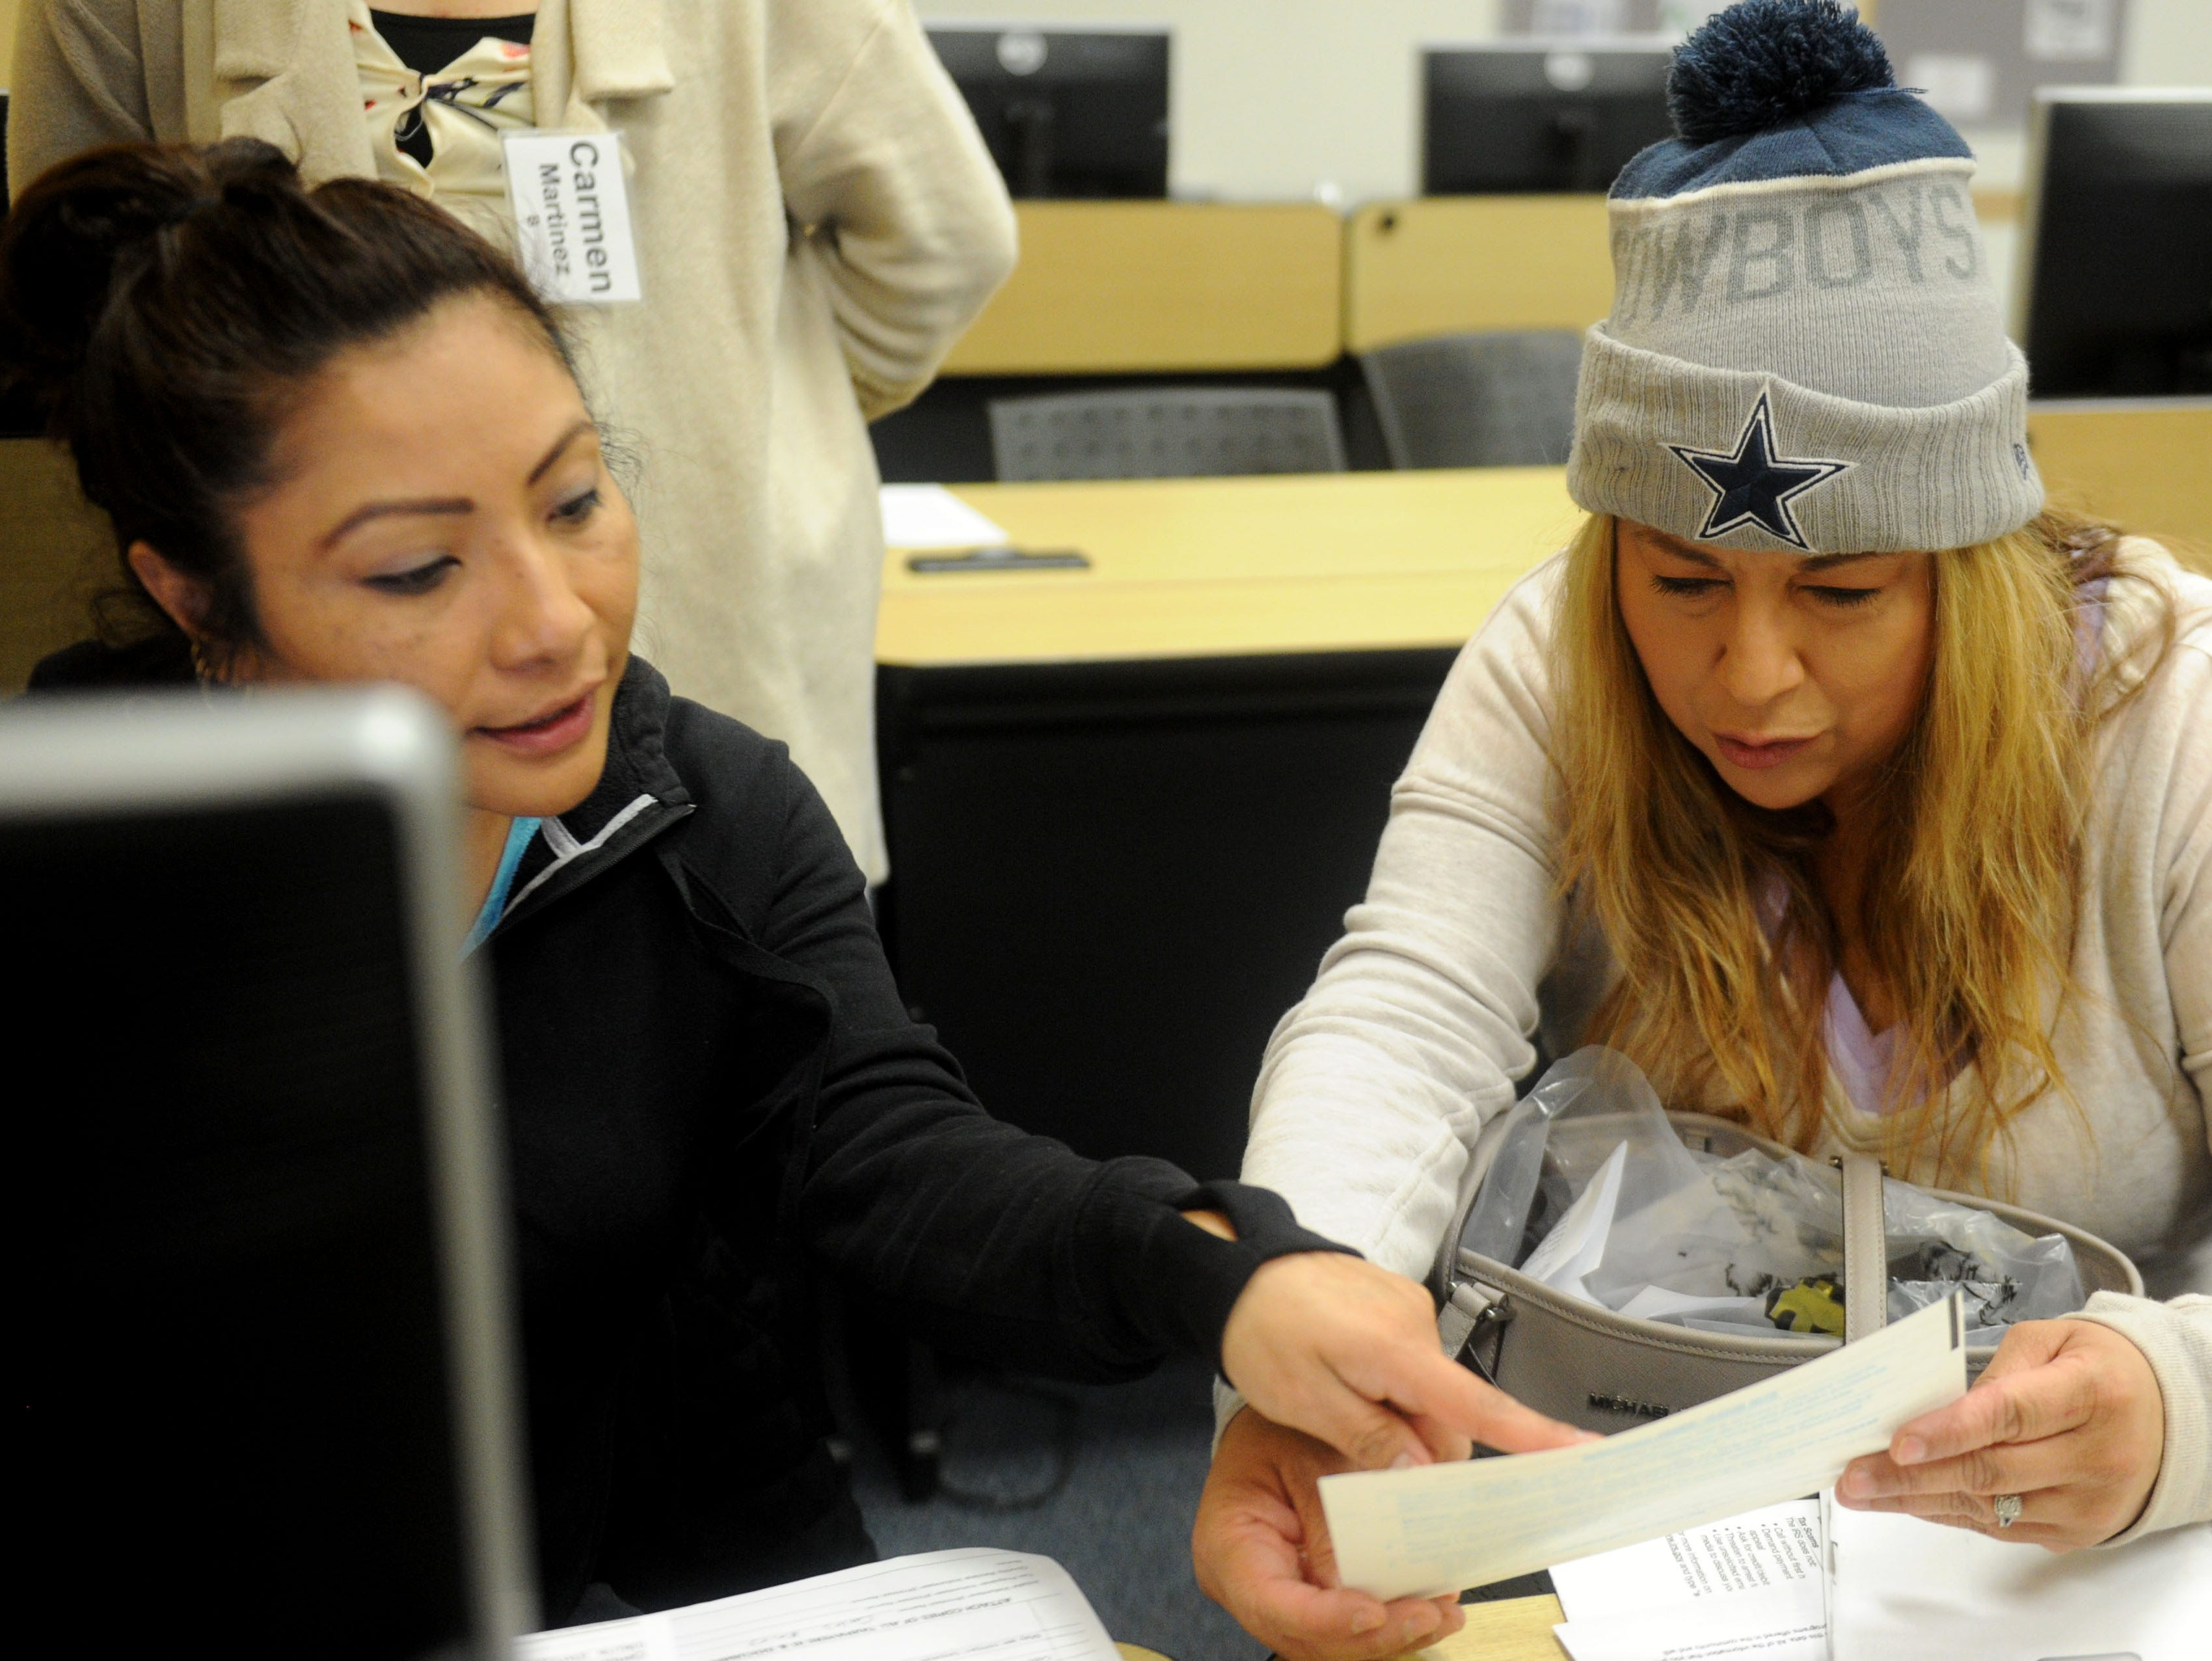 Aimee Sosa, left, helps Yvette Estrella with her taxes recently at the California Lutheran University extension in Oxnard as part of the United Way's free Volunteer Income Tax Assistance program.